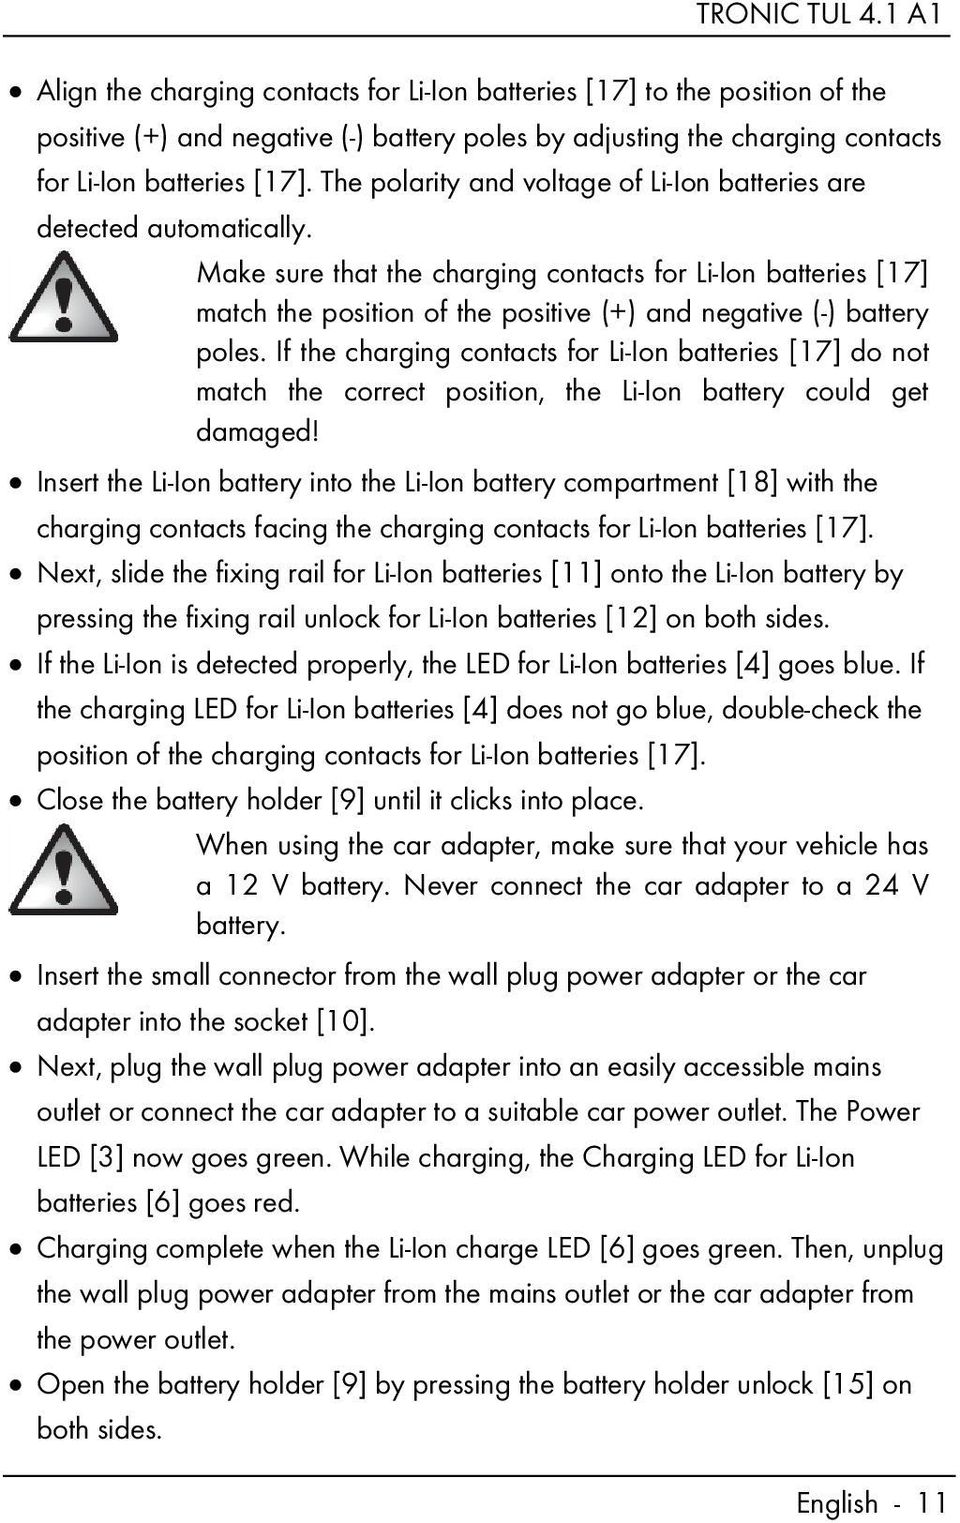 Make sure that the charging contacts for Li-Ion batteries [17] match the position of the positive (+) and negative (-) battery poles.